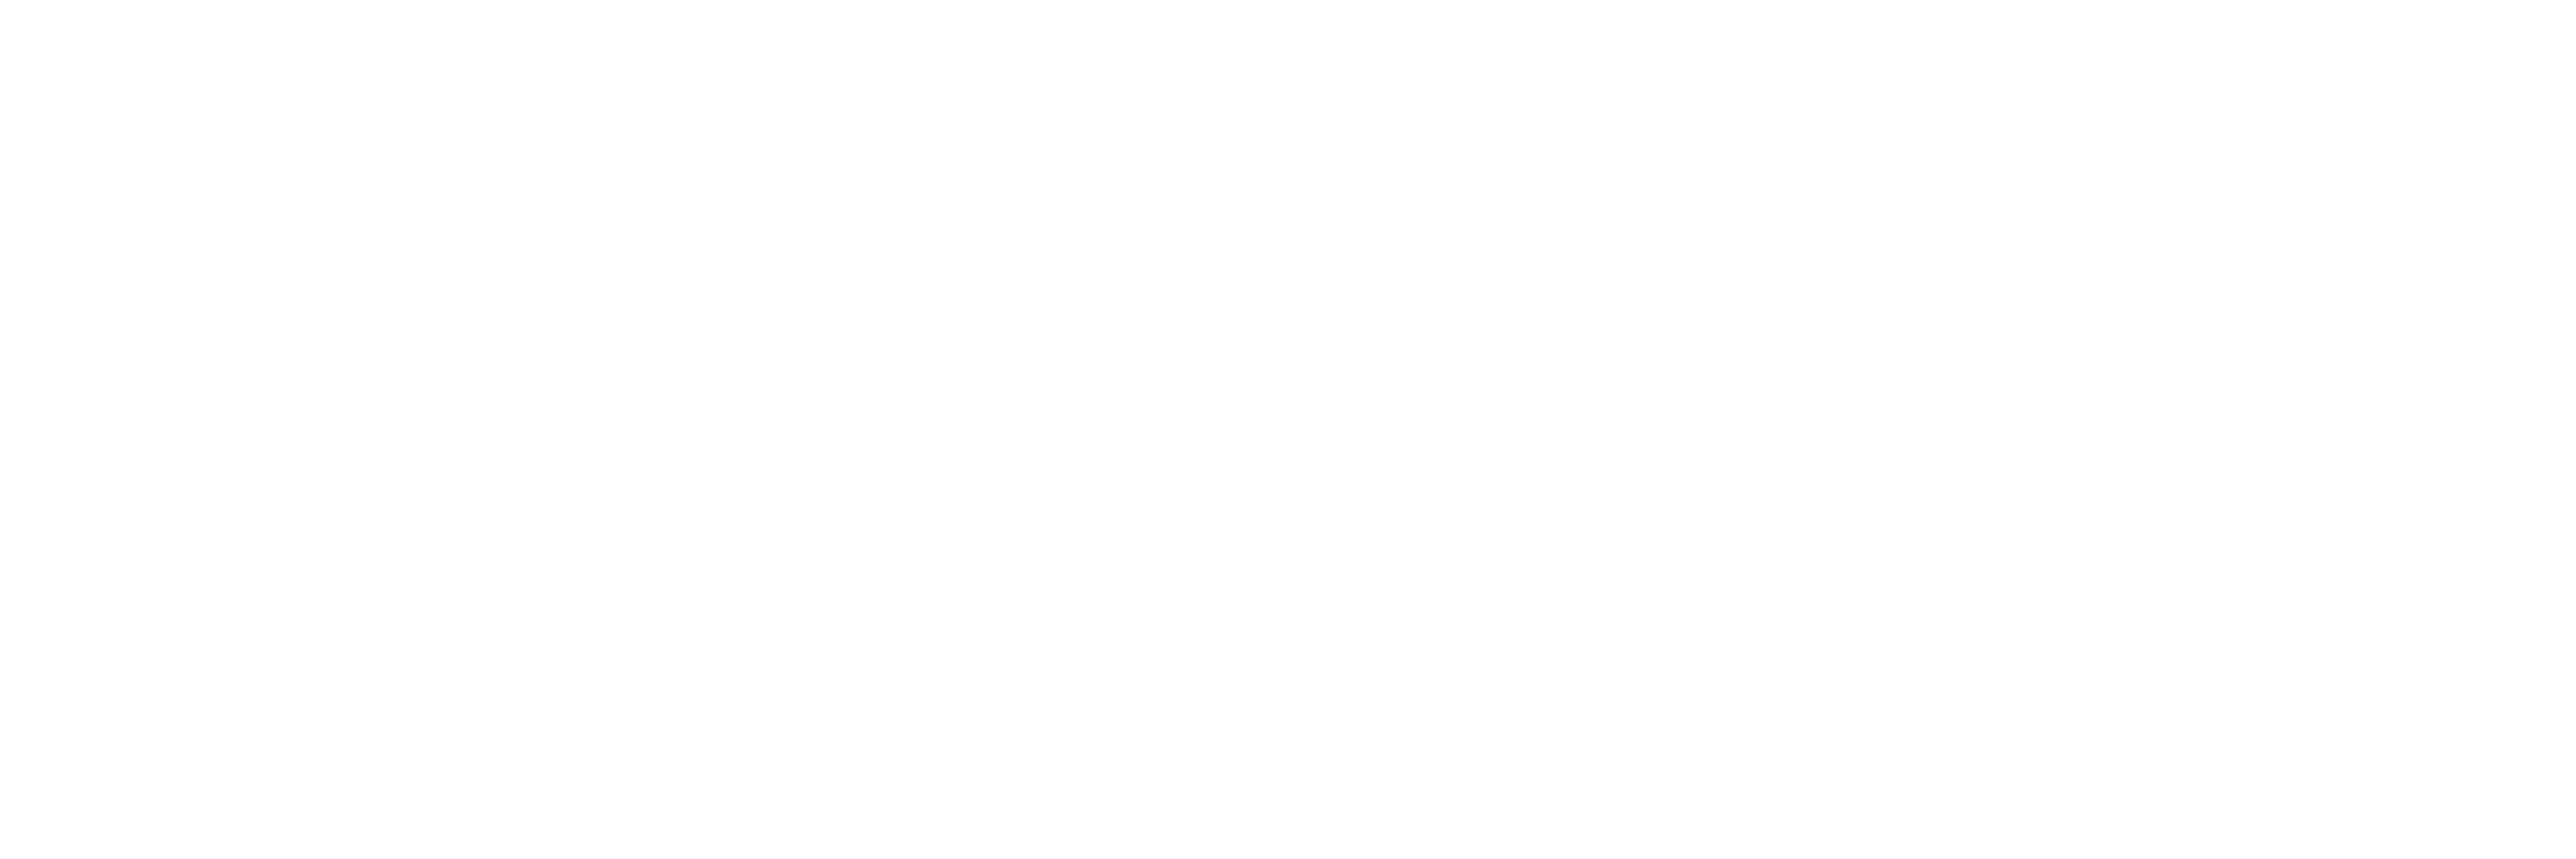 The Amplification Project:  Digital Archive for Forced Migration, Contemporary Art, and Action